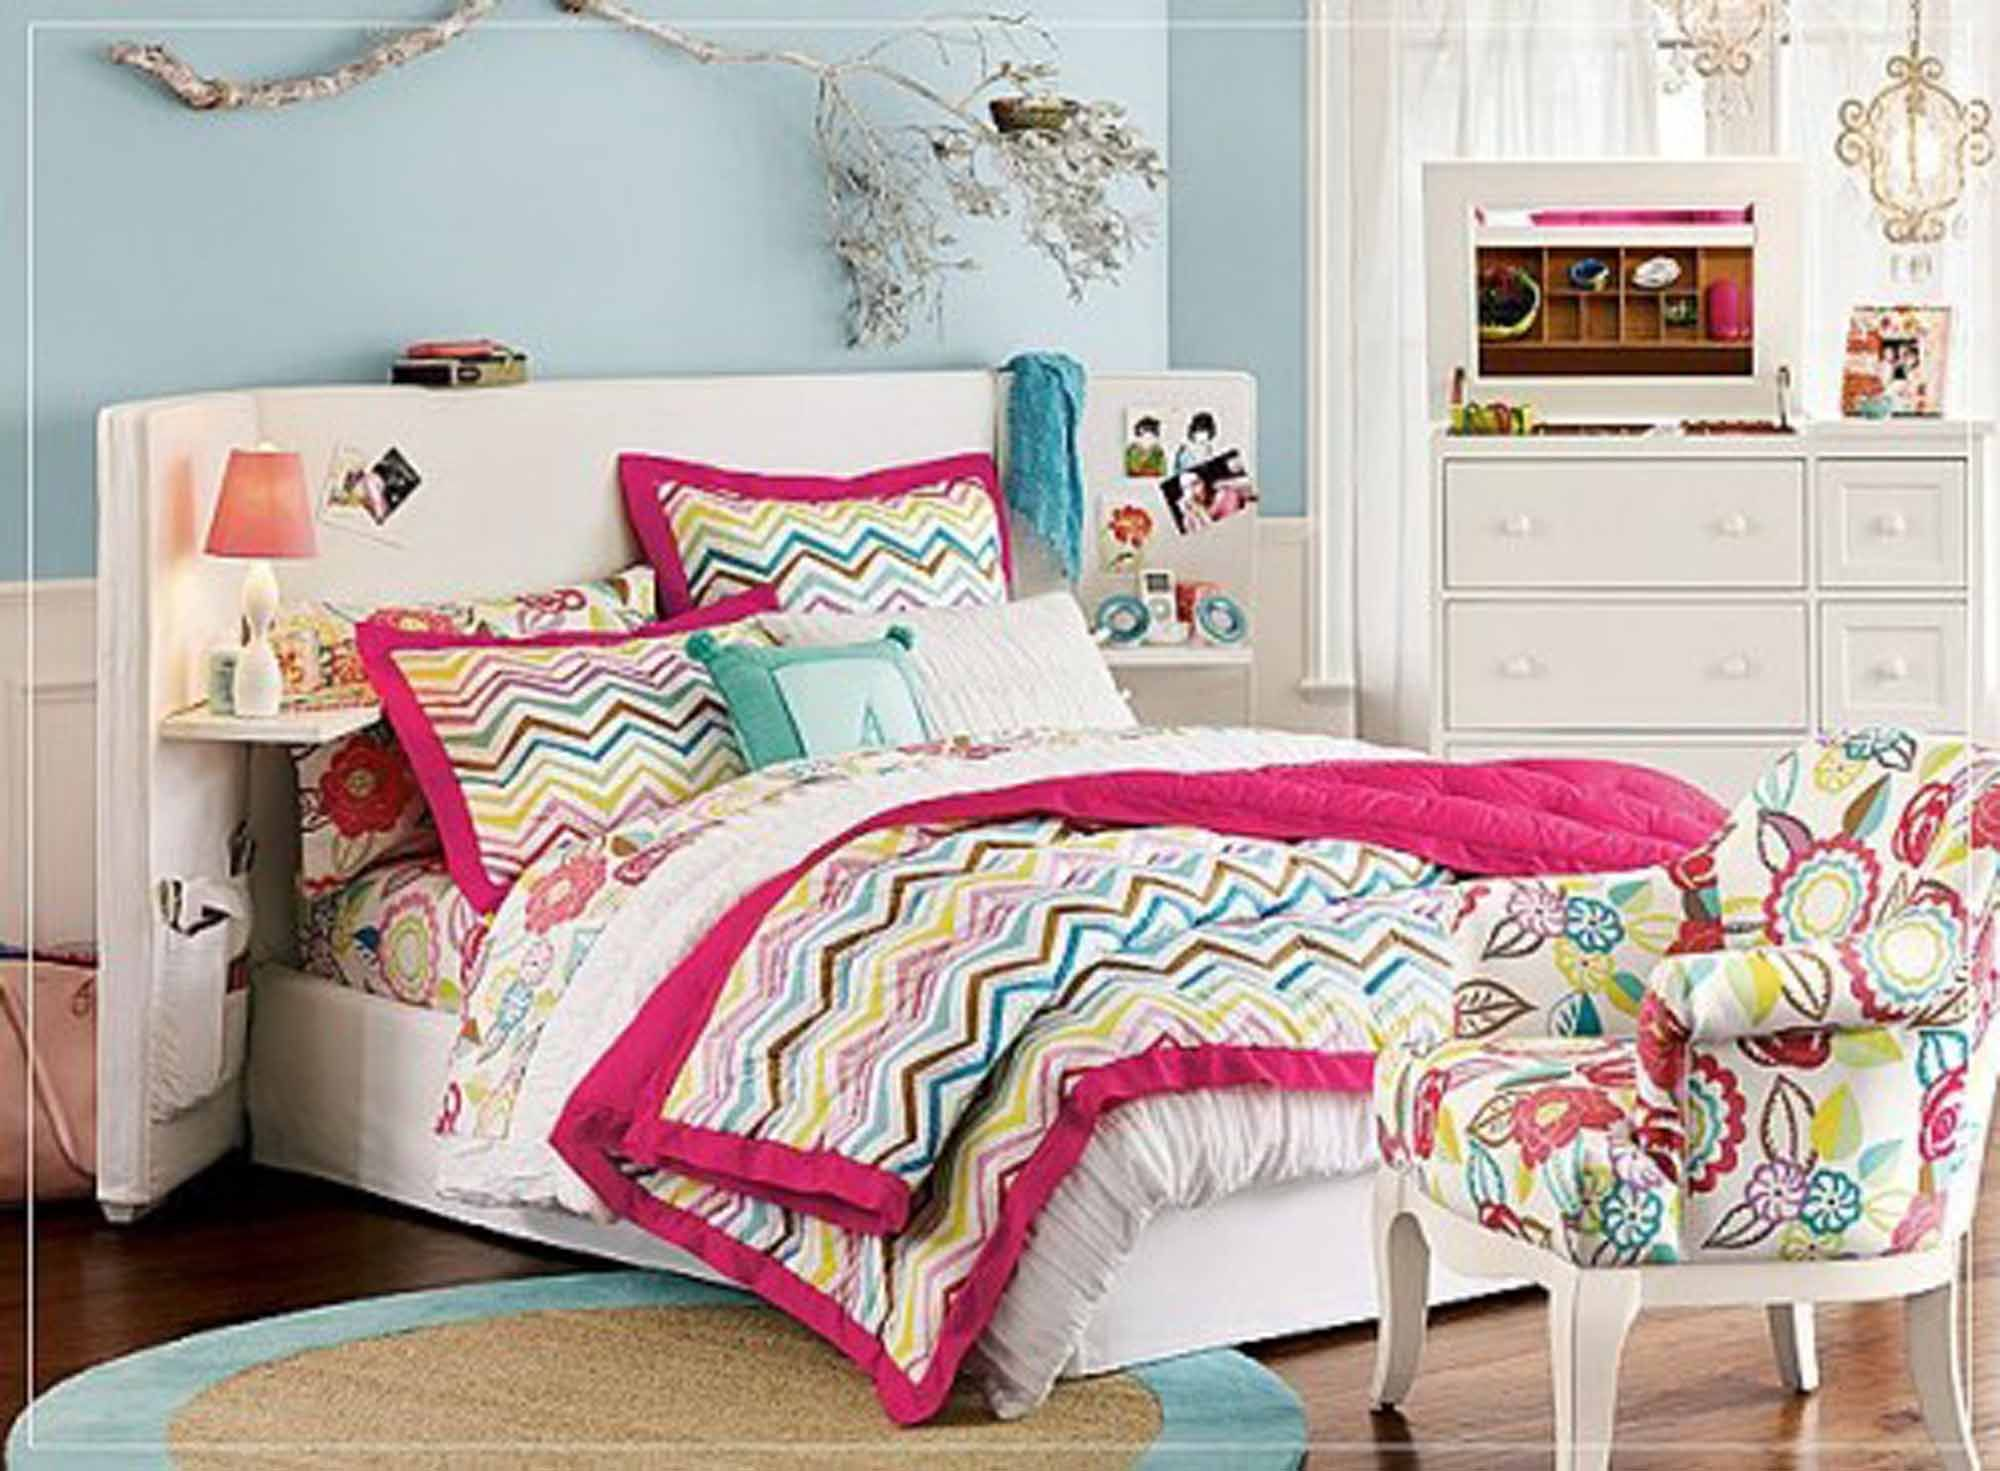 Bedroom designs ideas for teenage girls - 110 Best Images About Quartos De Adolescentes Teens Bedrooms On Pinterest Teenage Bedrooms Room Decorating Ideas And Decorating Ideas